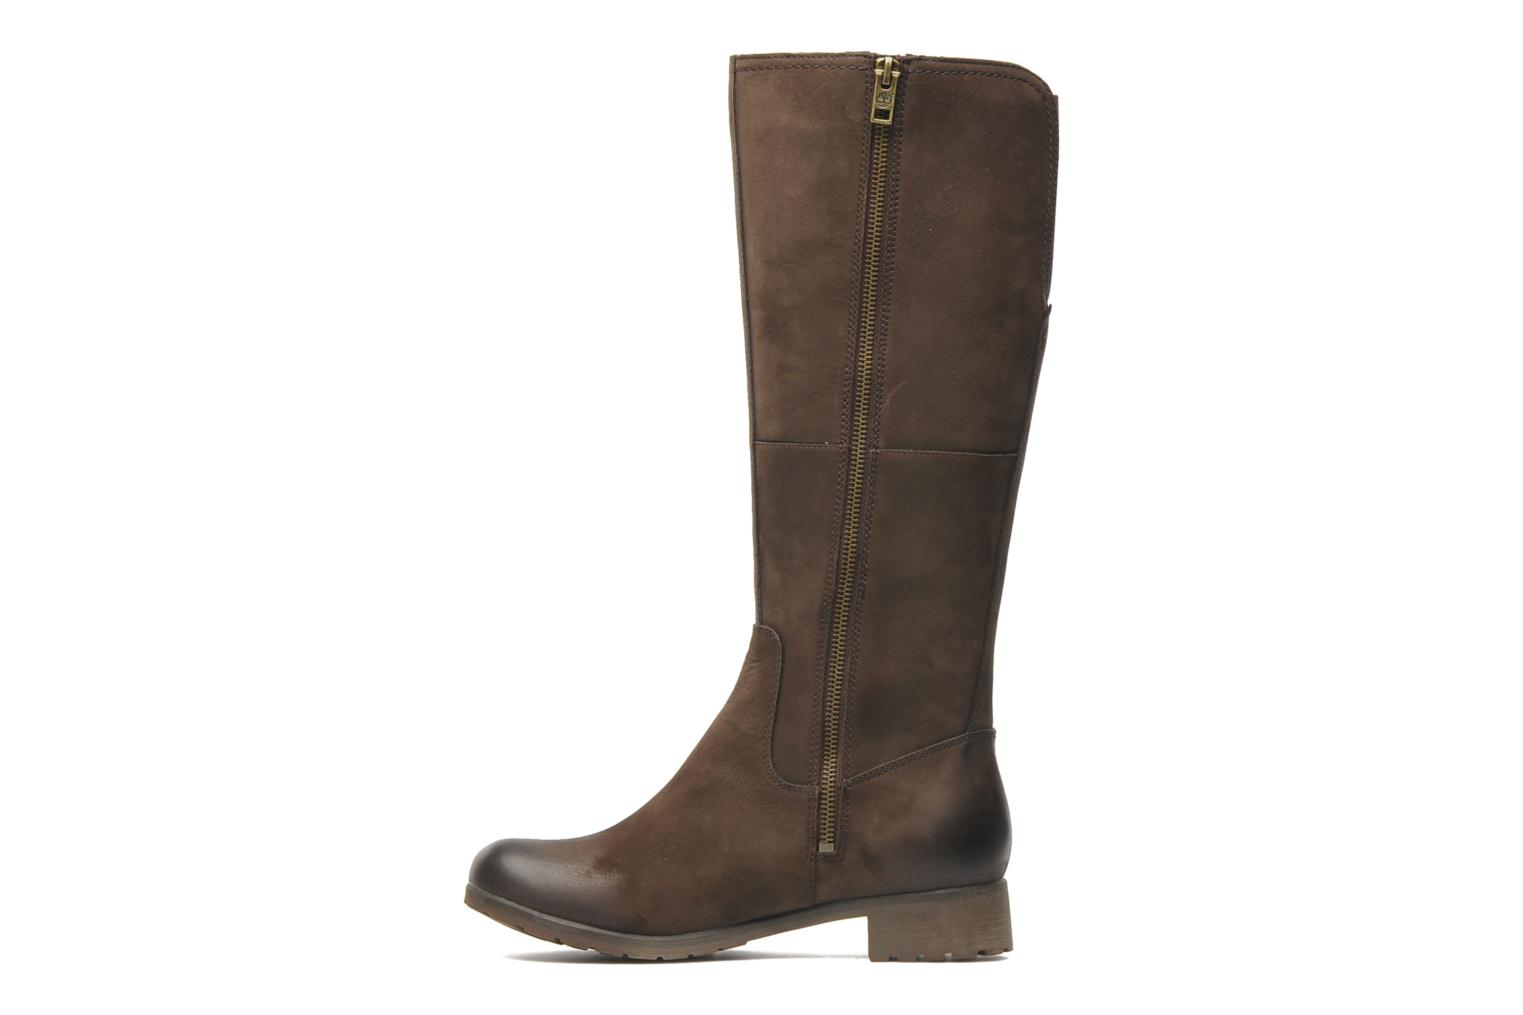 Putnam Tall WP Boot Dark Brown Nubuck